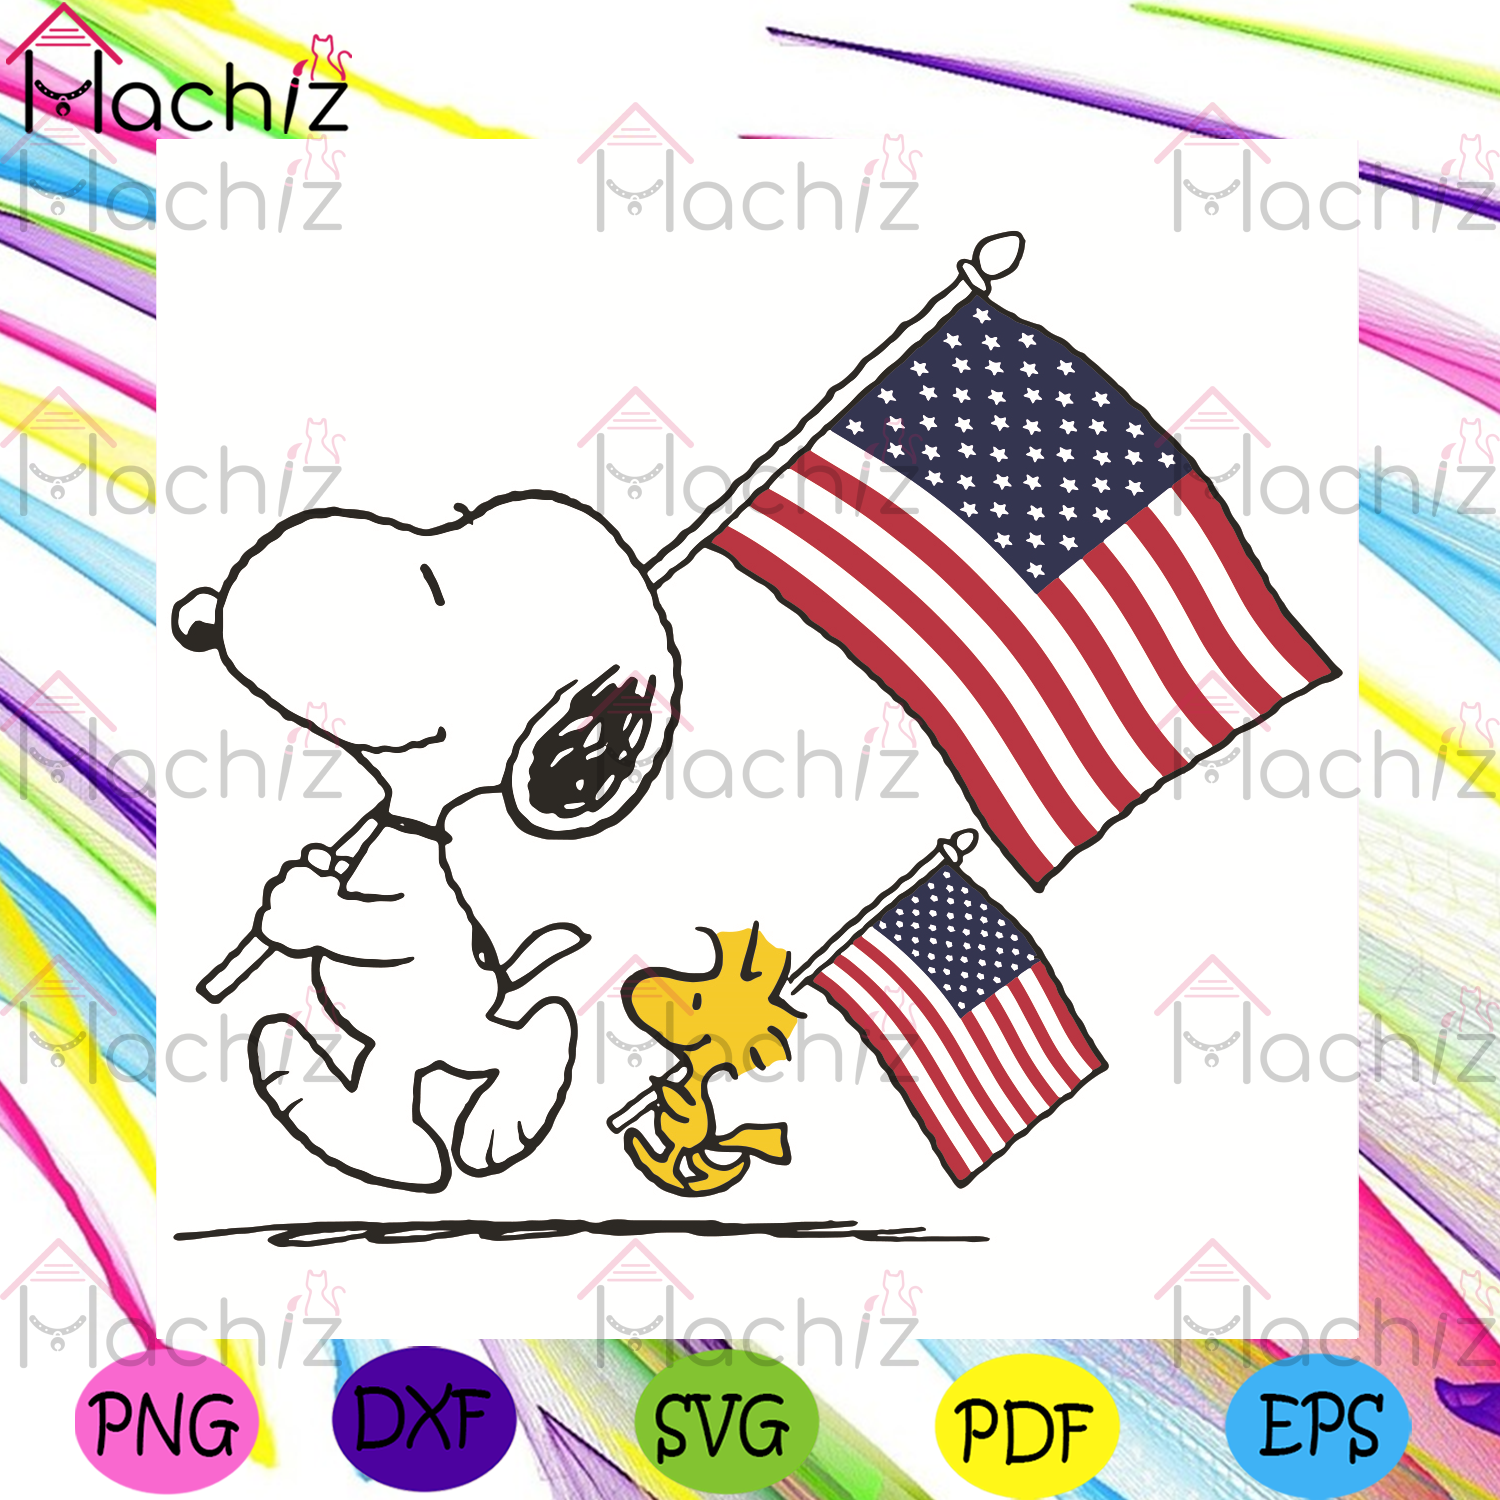 Snoopy And Woodstock Holding American Flag Svg, Independence Svg, Snoopy Svg, Woodstock Svg, 4th Of July Svg, American Flag Svg, Independence Day Svg, Snoopy Gifts Svg, Woodstock Gifts Svg, Trending Svg